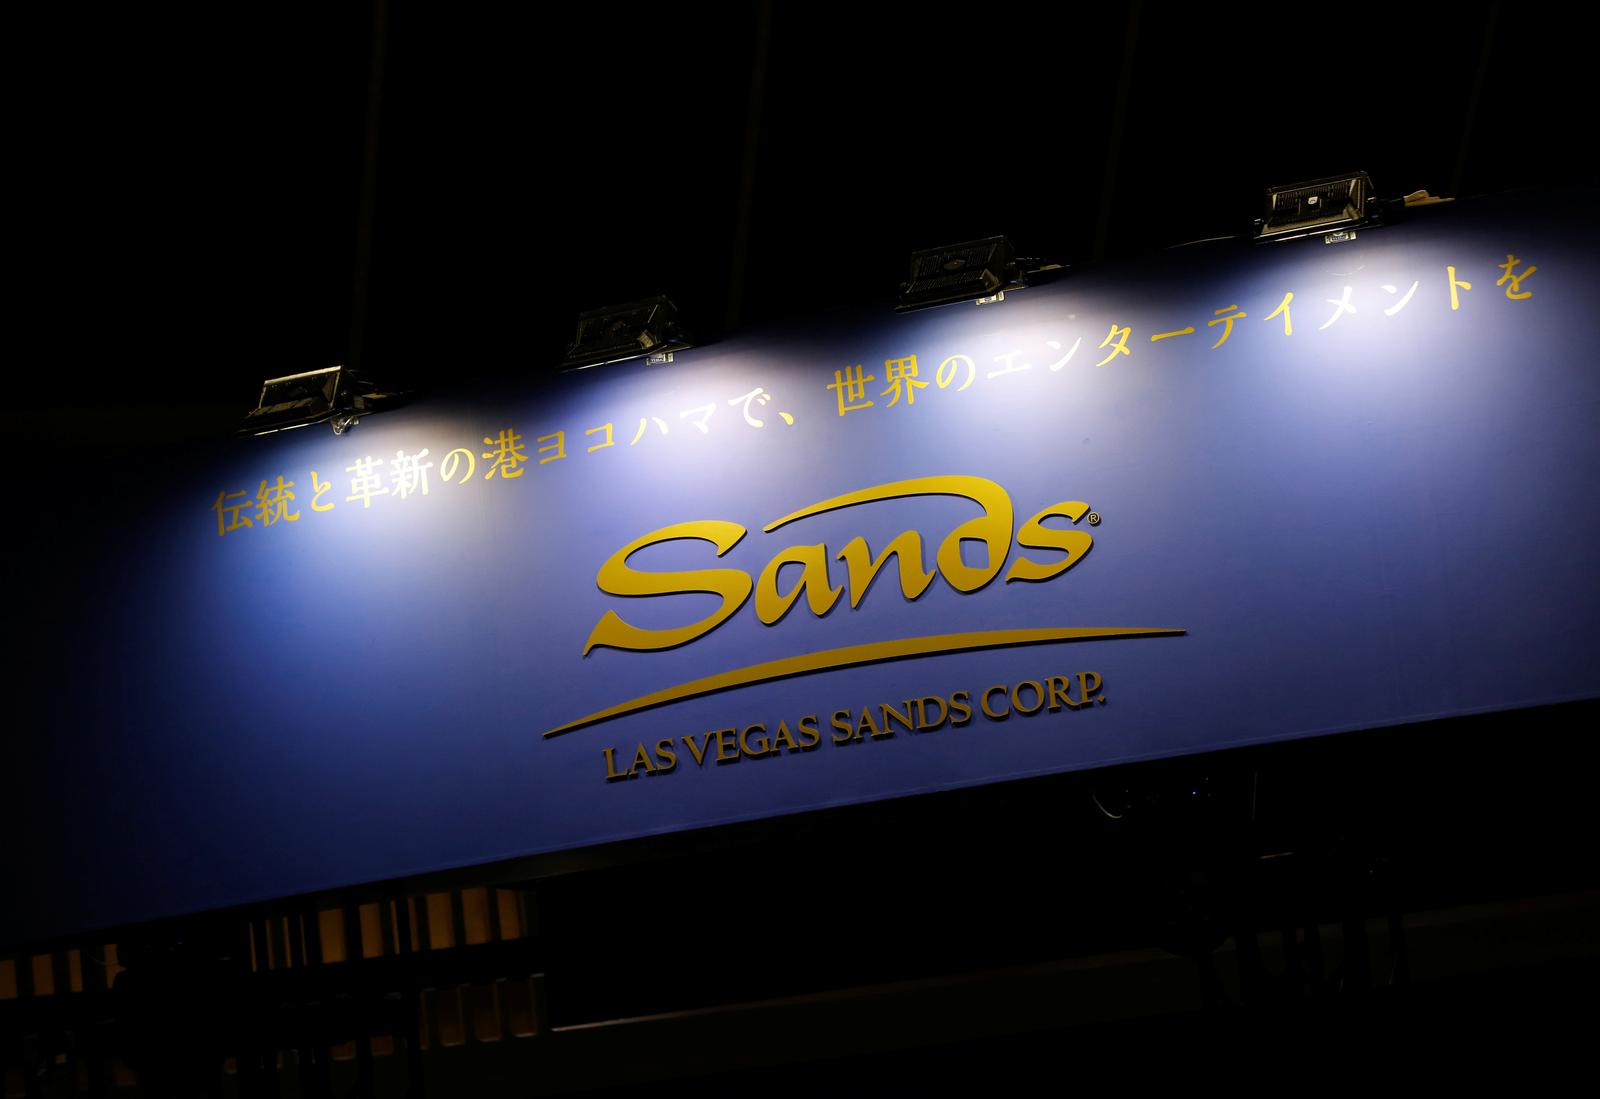 Las Vegas Sands mulling $6 billion sale of Vegas casinos - source